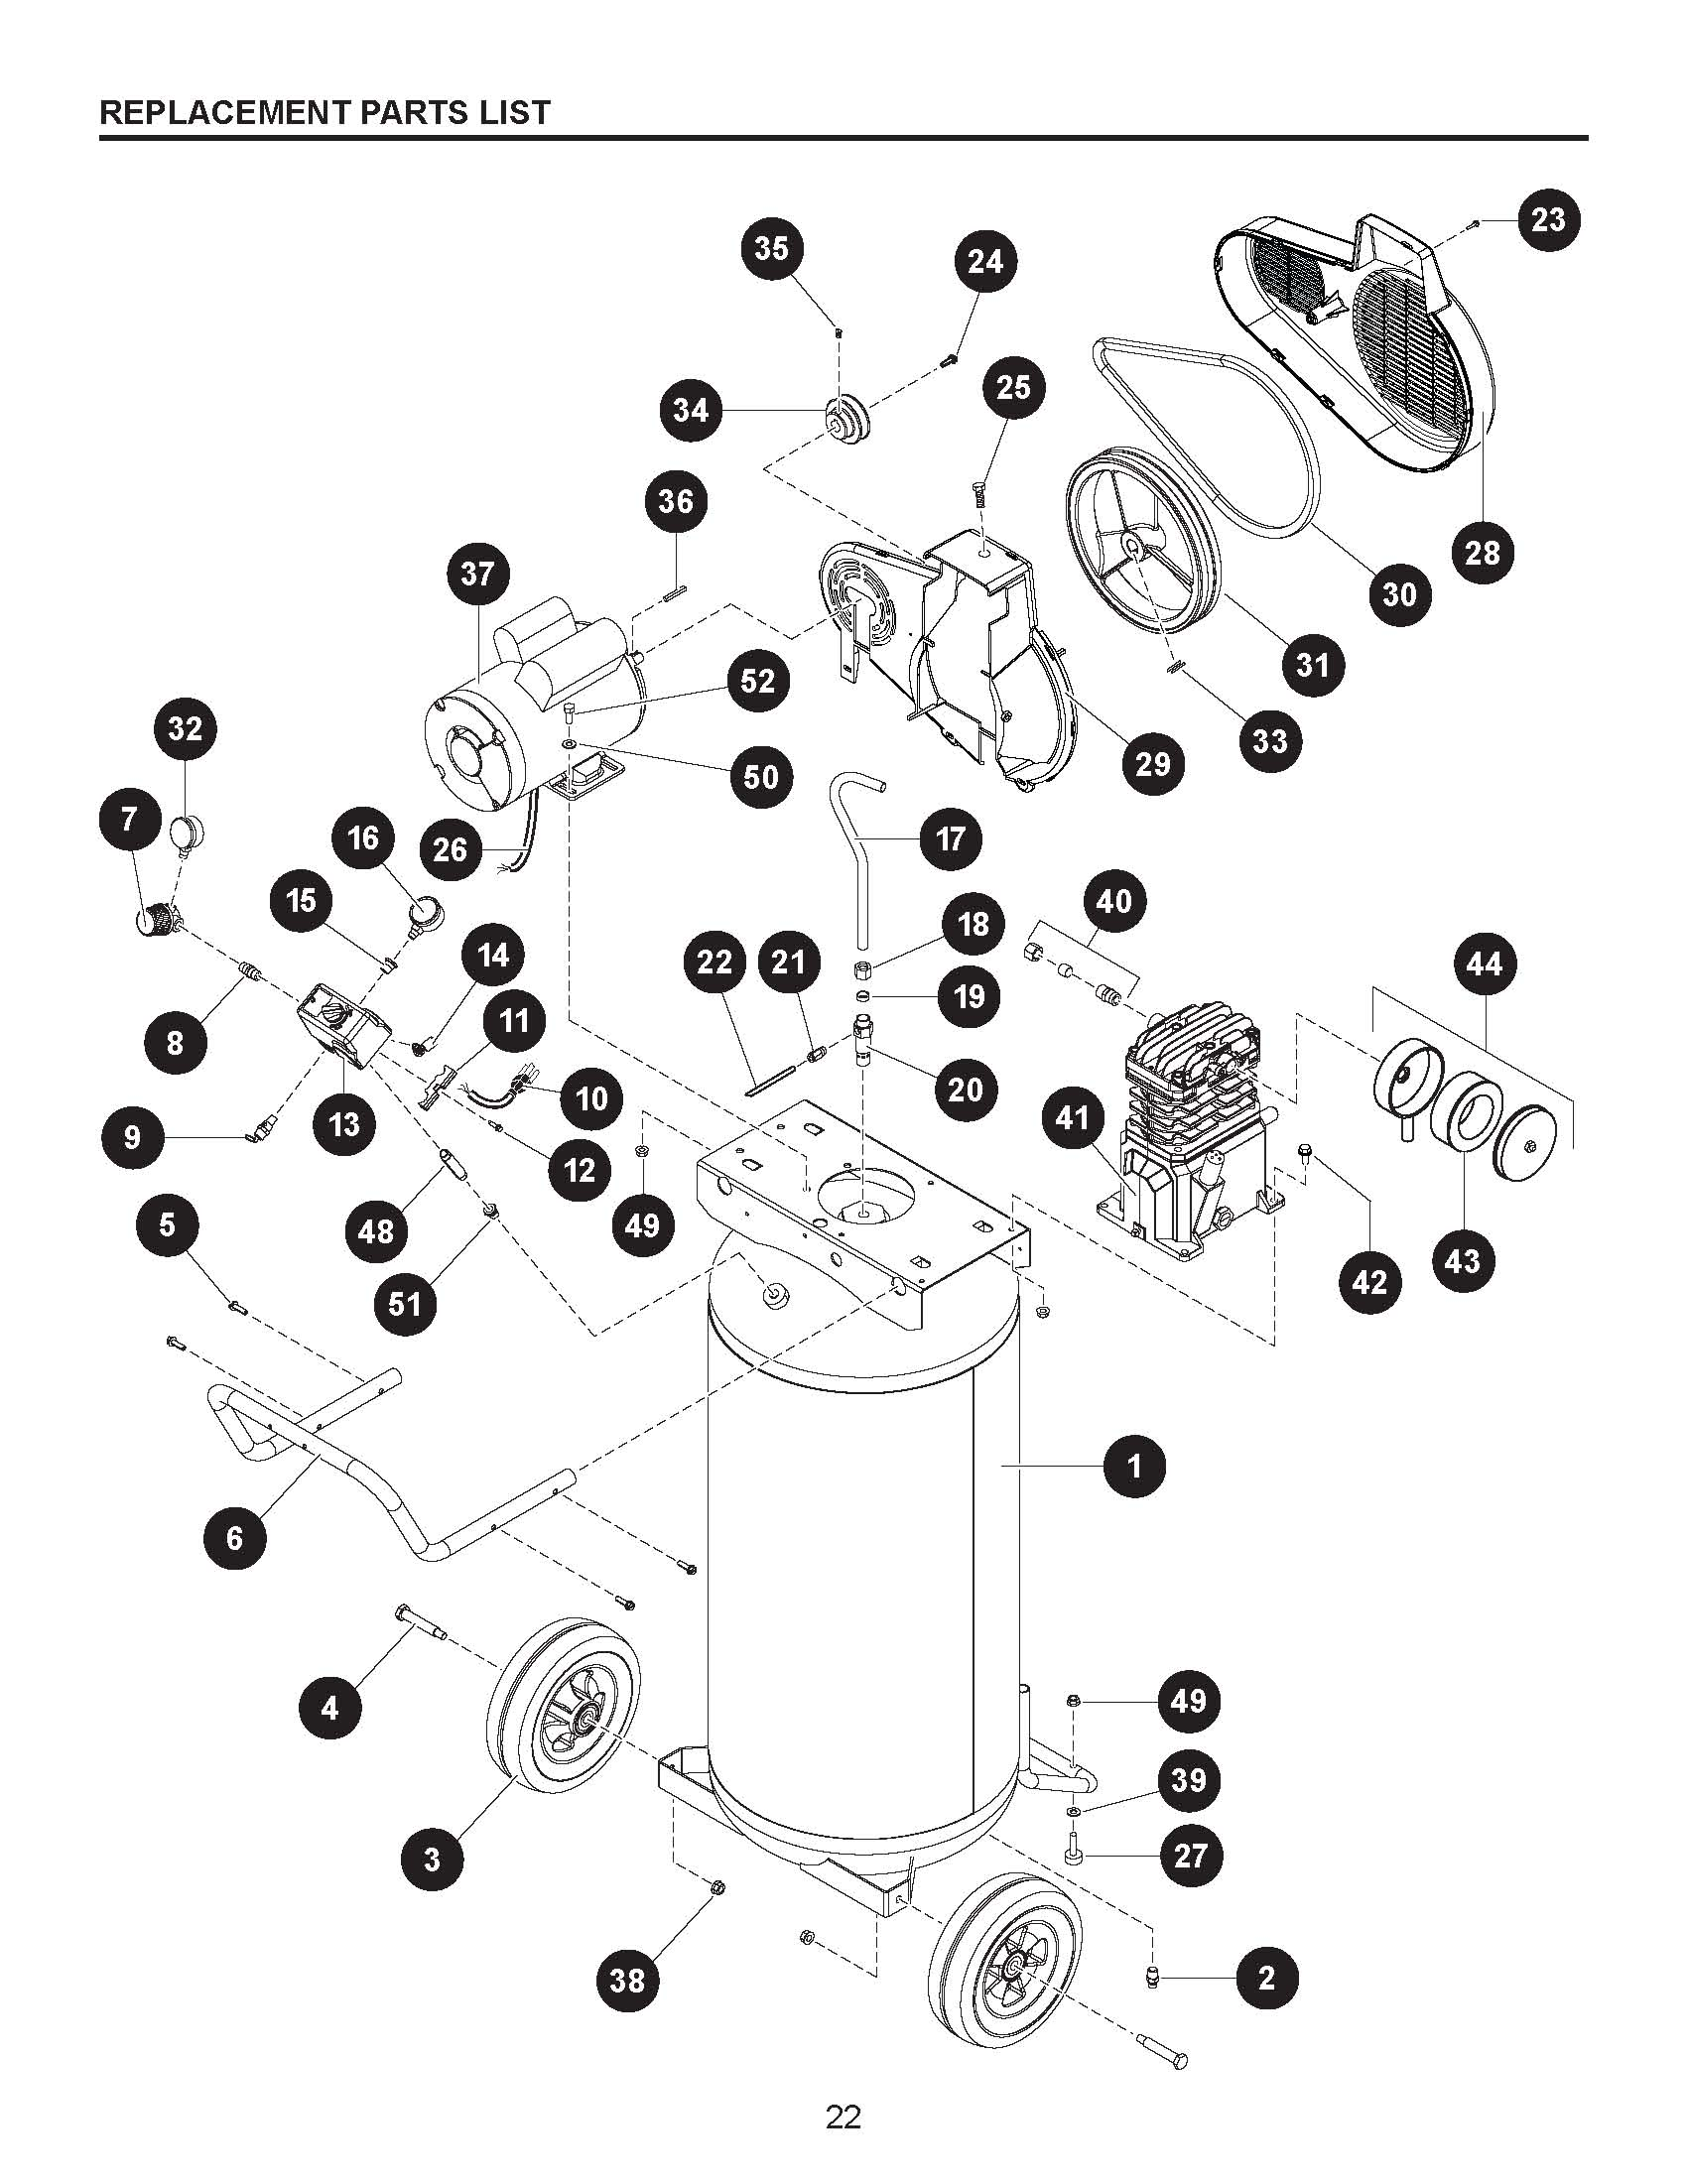 VT6389 - Air Compressor Parts schematic